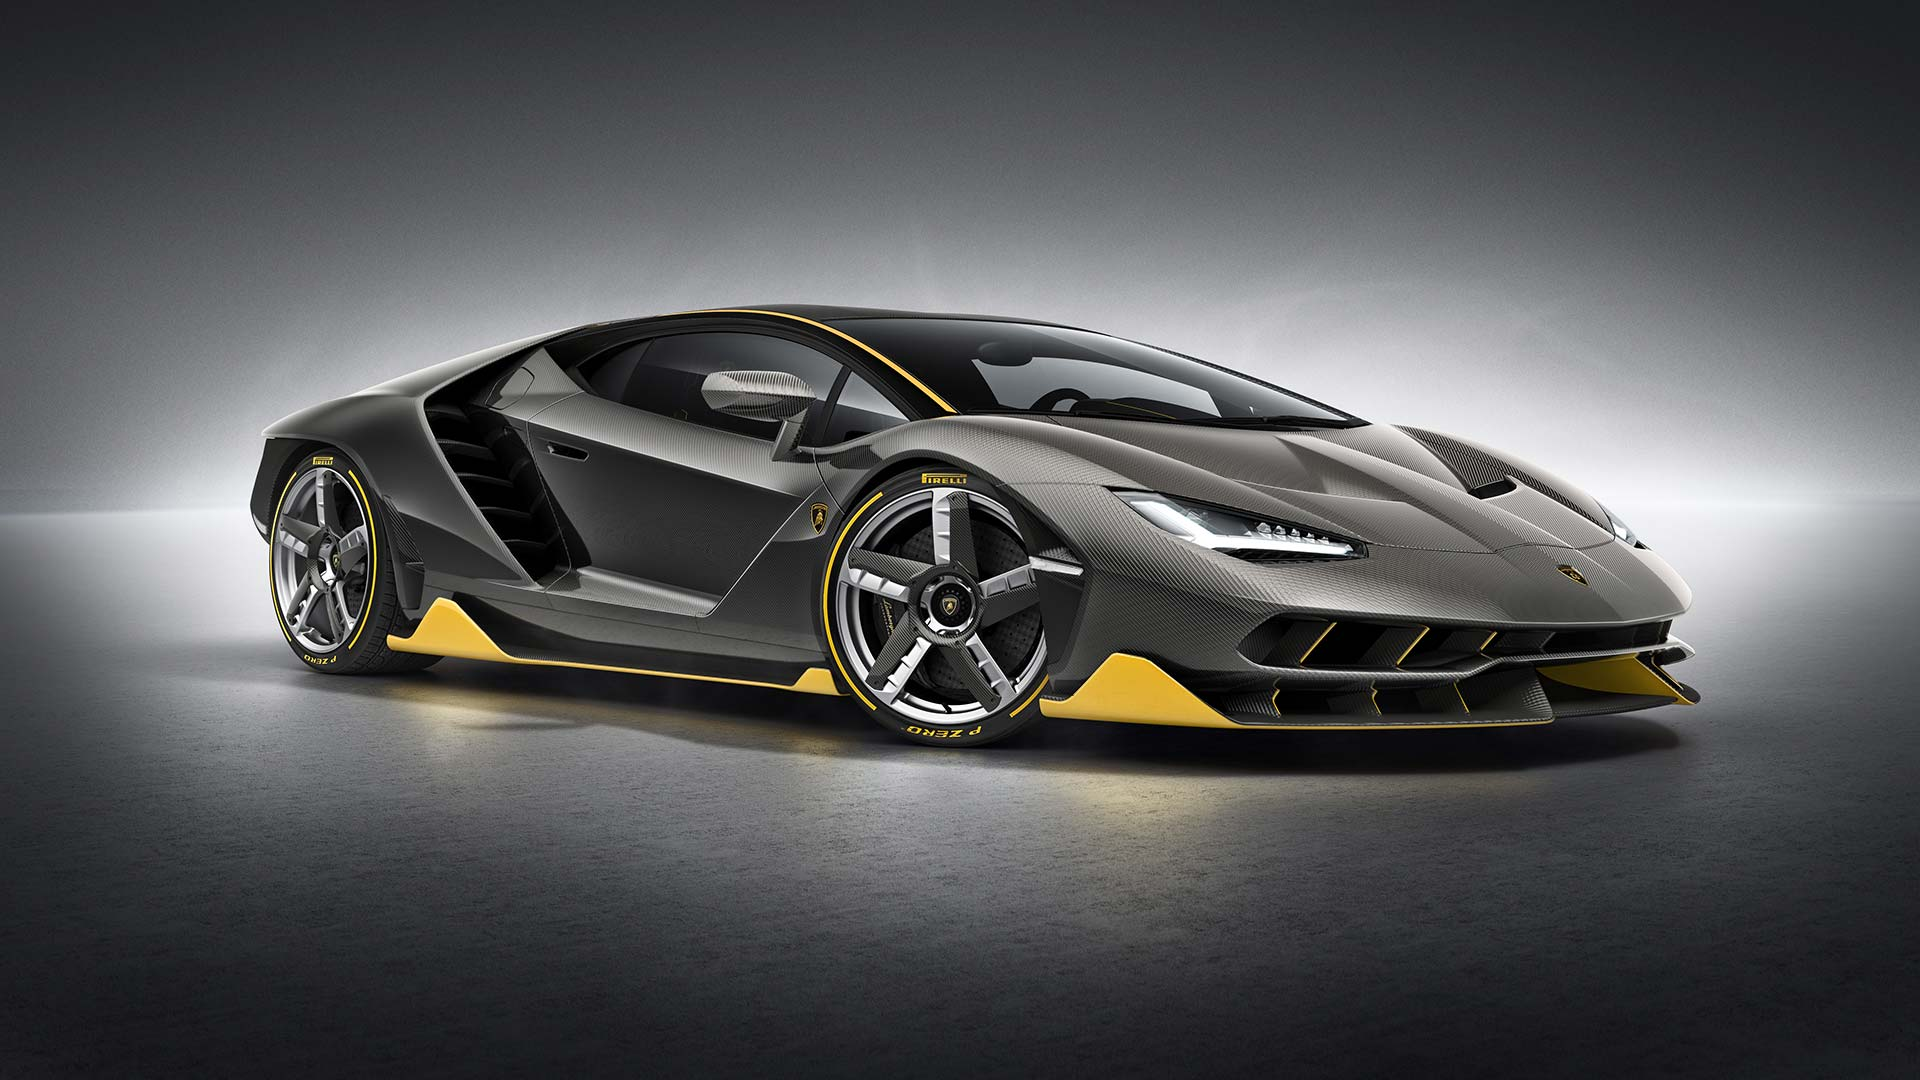 The Lamborghini Centenario is sensational, no bull!